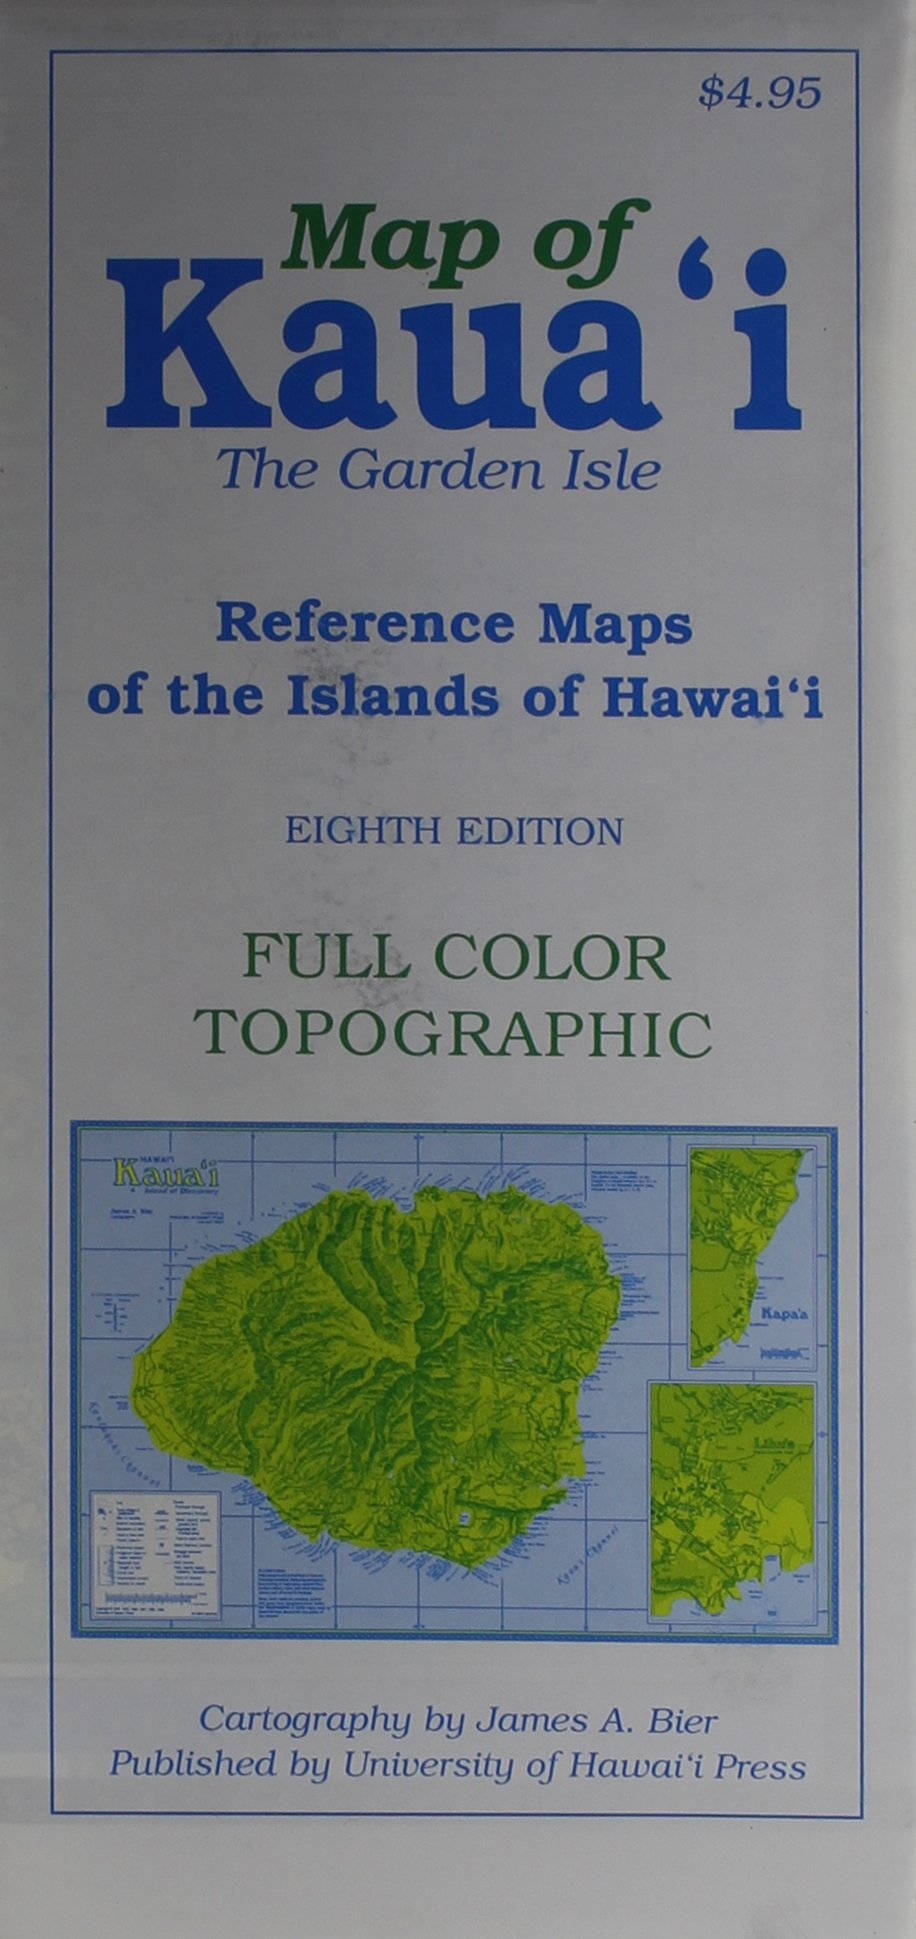 Reference Maps of the Islands of Hawaii Kauai James A Bier